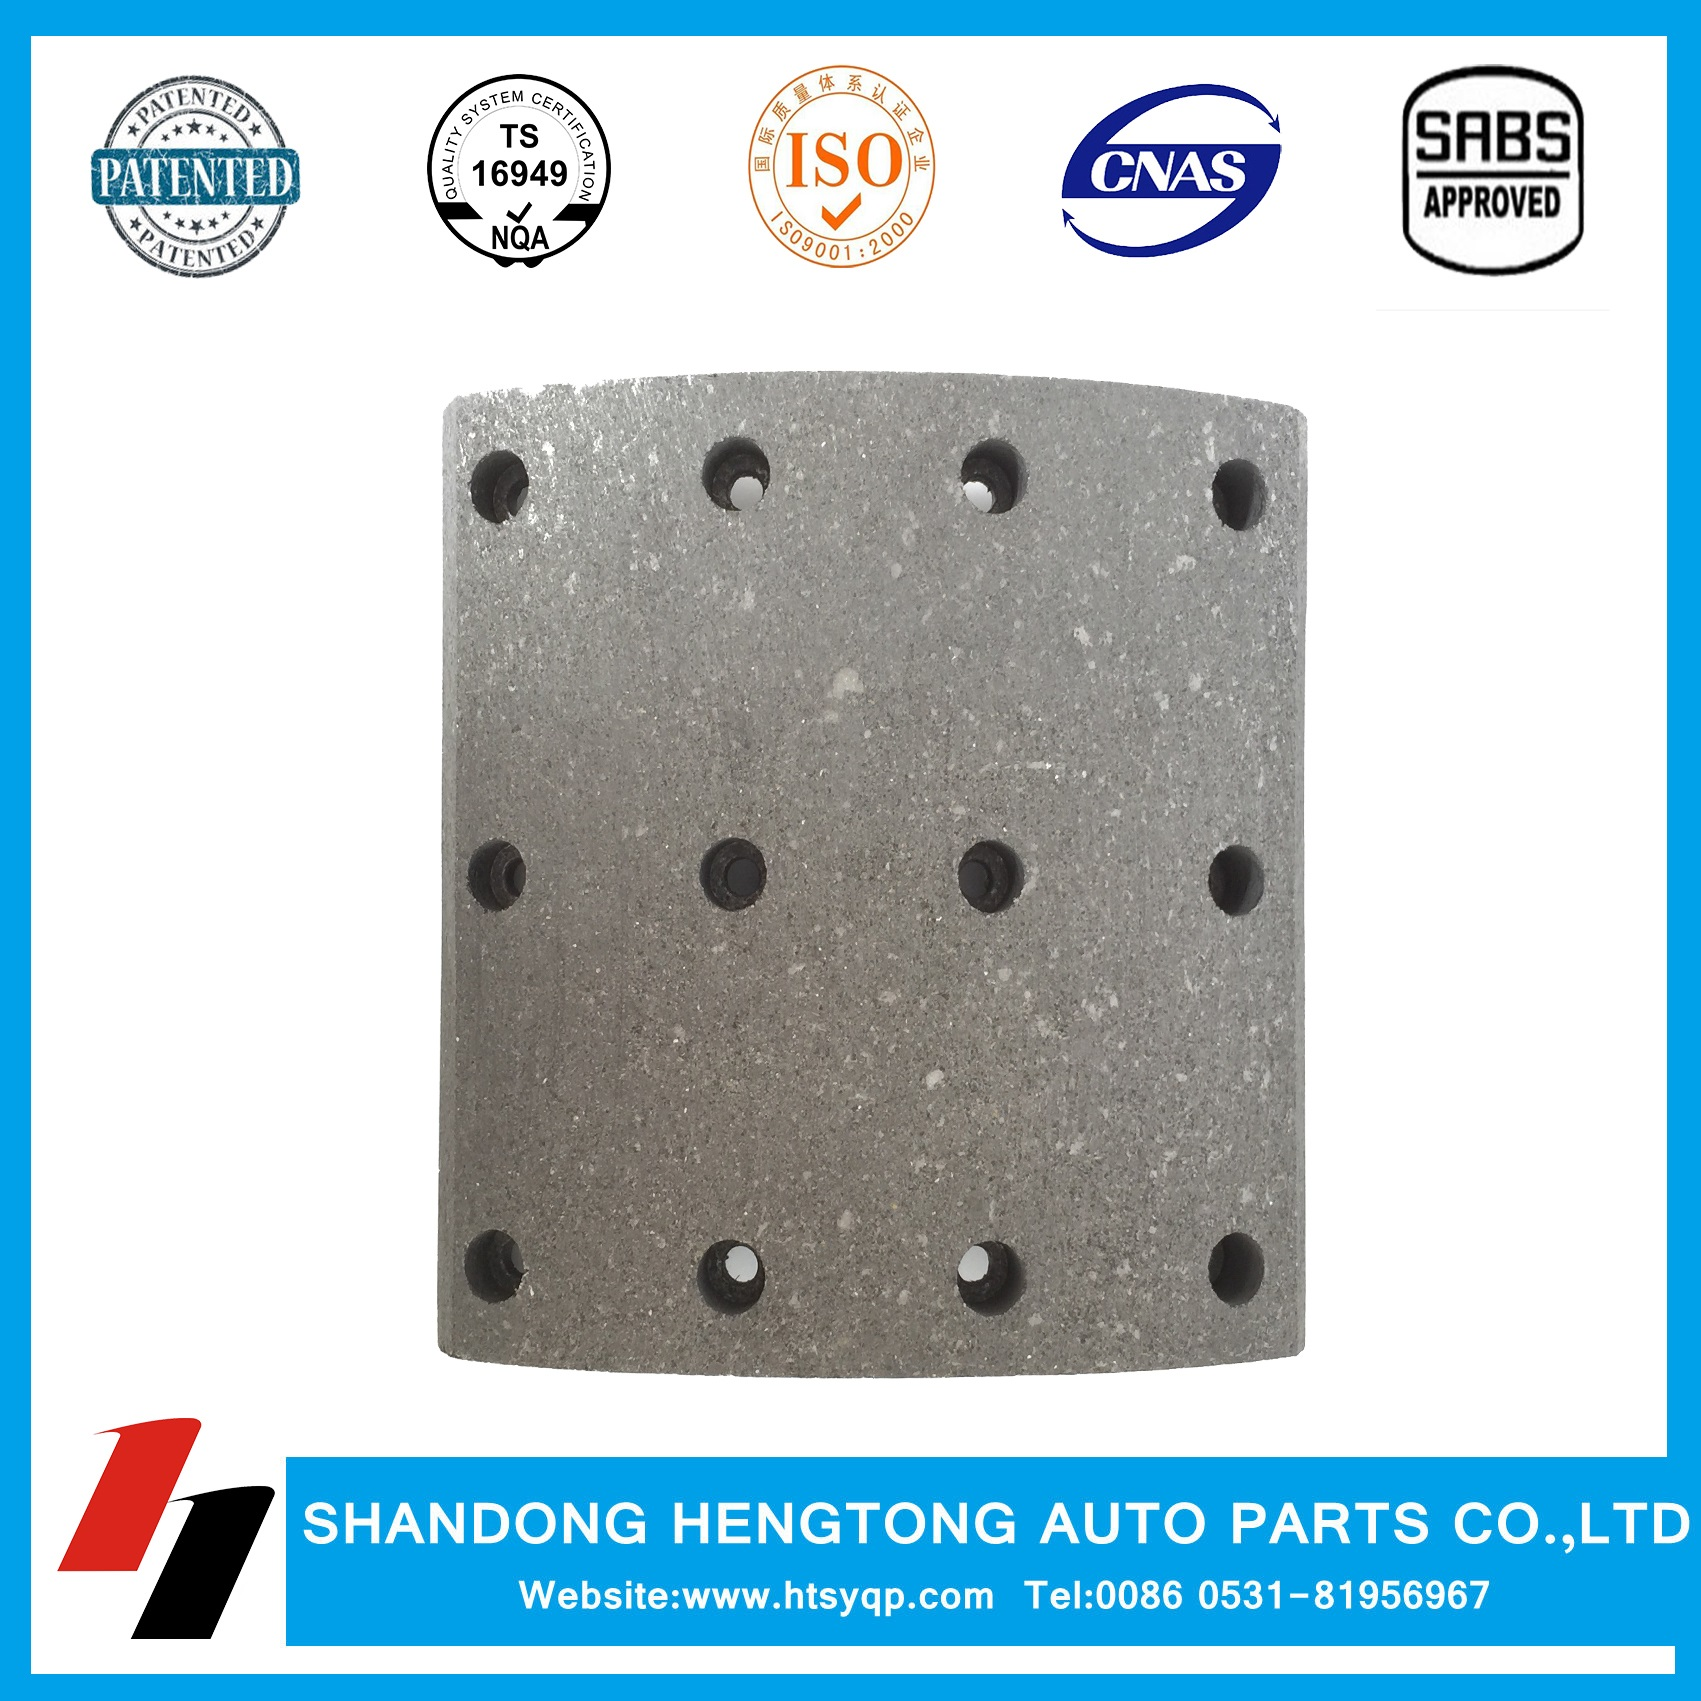 Scania Non-asbestos/Semi-metal Brake Lining with rivets for heavy duty truck